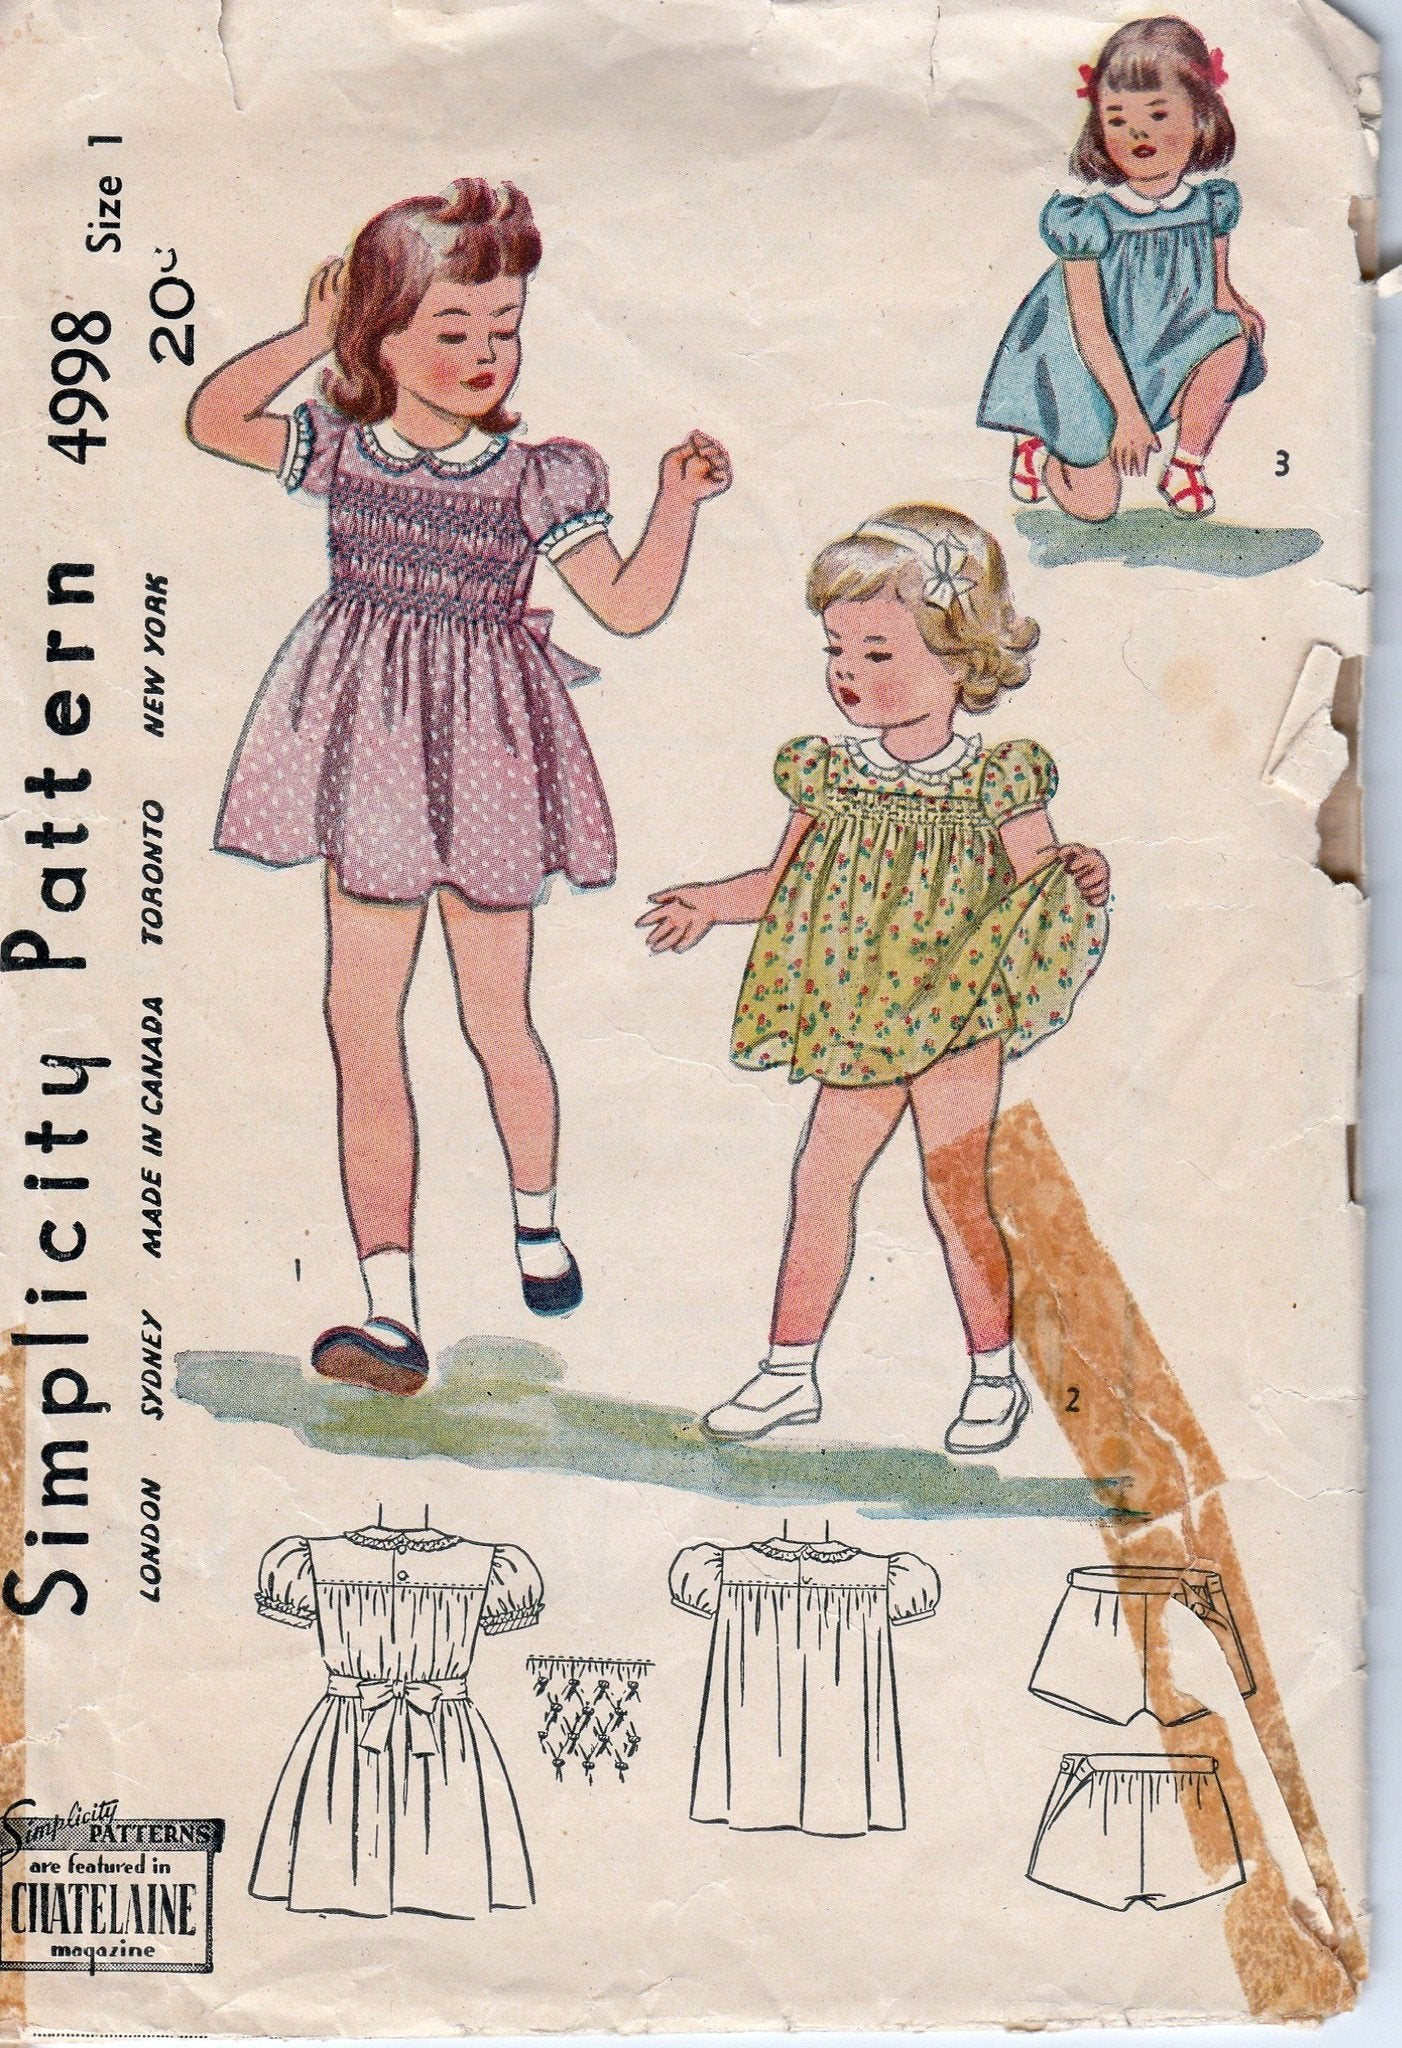 Simplicity 4998 Toddler Play Dress Panties Vintage Pattern 1940's - VintageStitching - Vintage Sewing Patterns